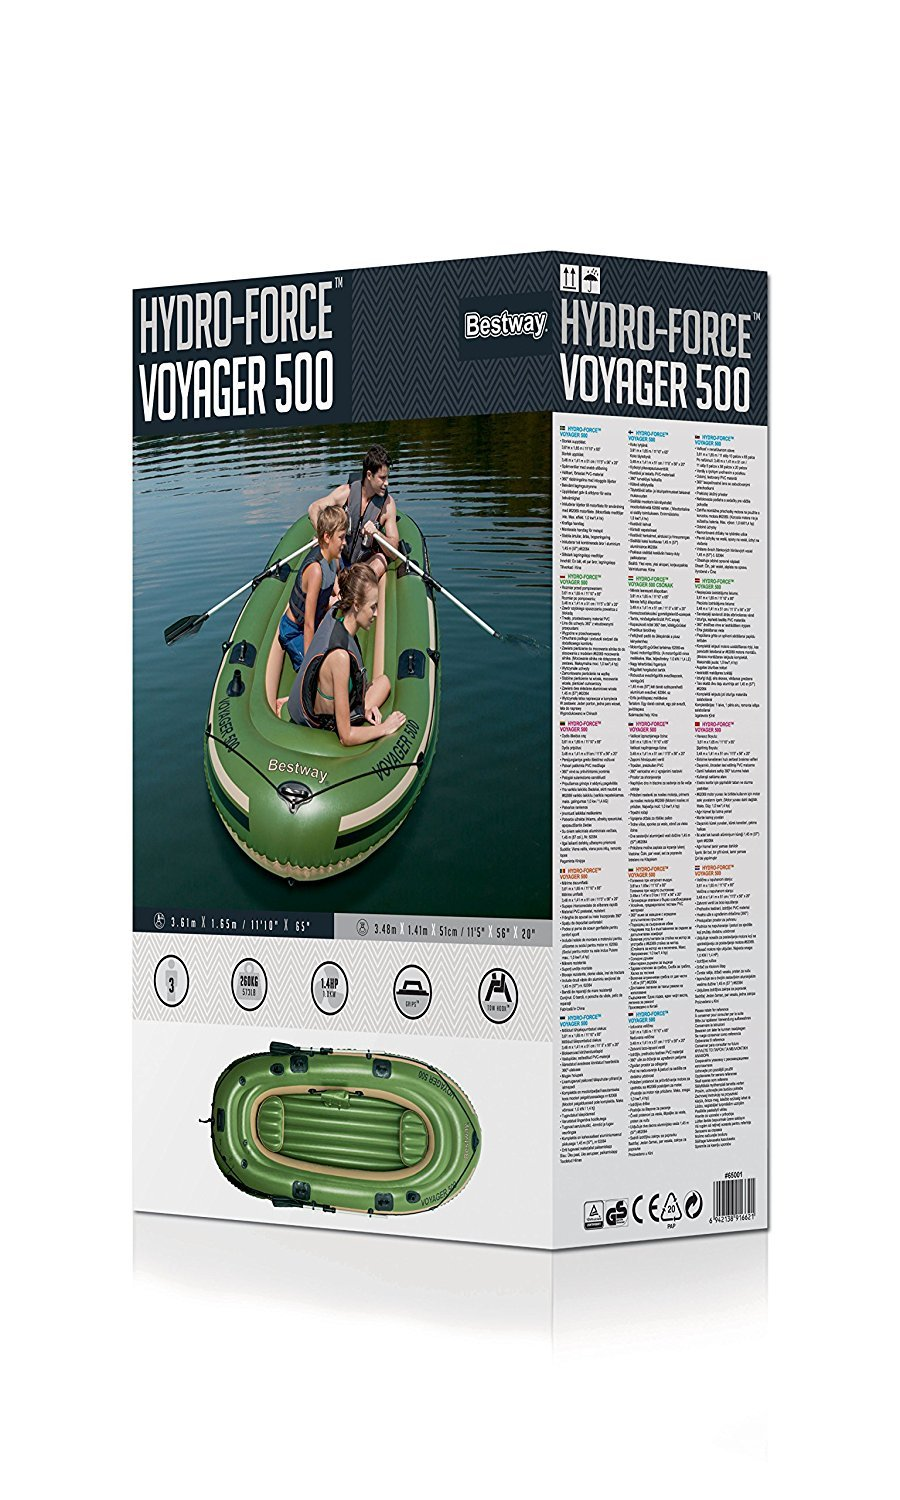 IZZY SPORT 3 personas Bote inflable Hydro Force Voyager 500 TÜV/GS ...